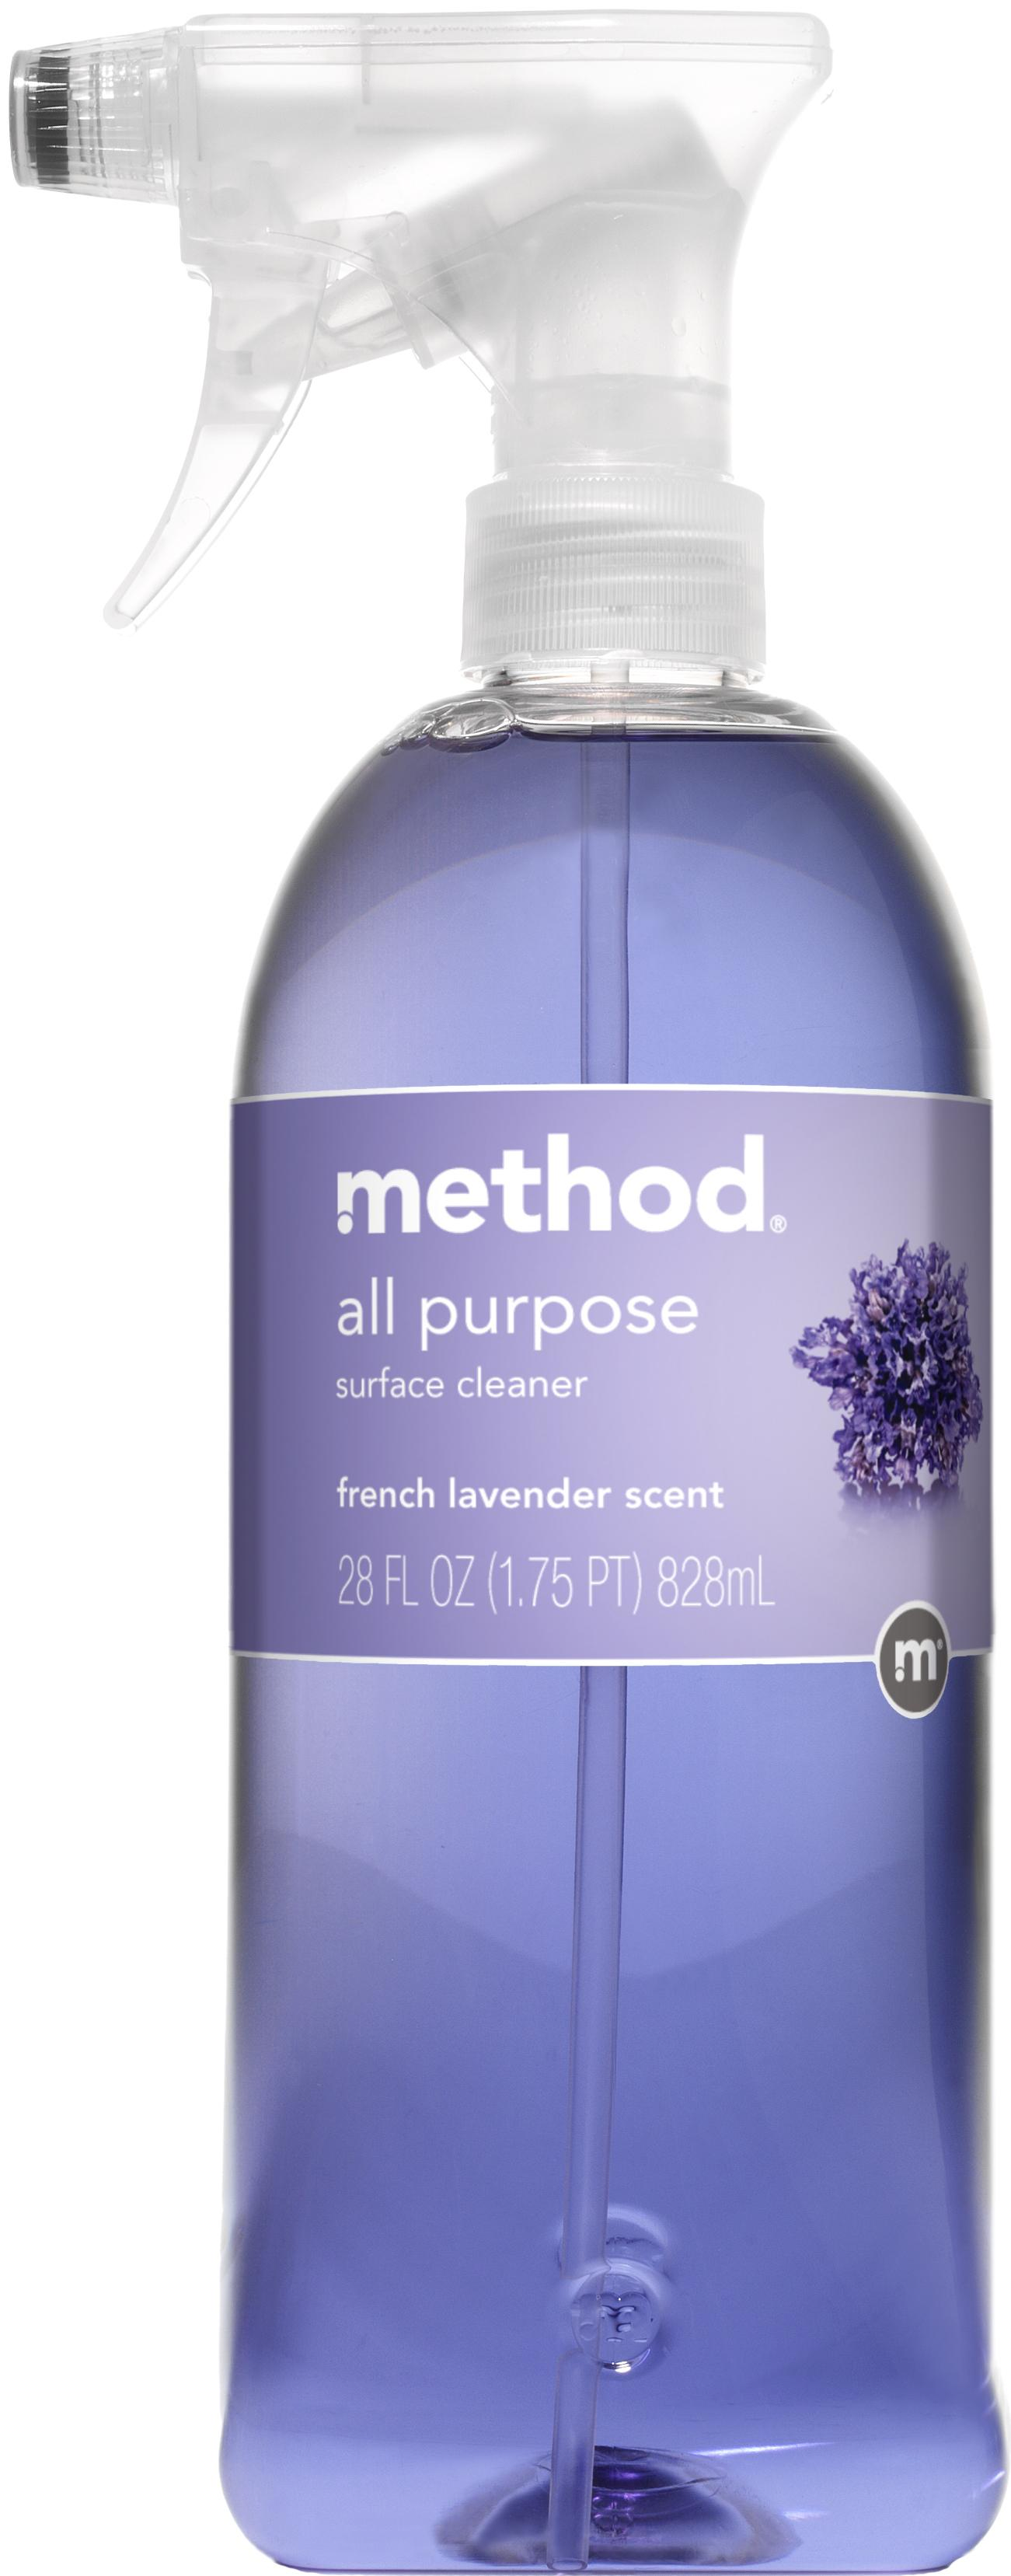 Bleach Free Natural Cleaners For The Bathroom Parenting Without Tears